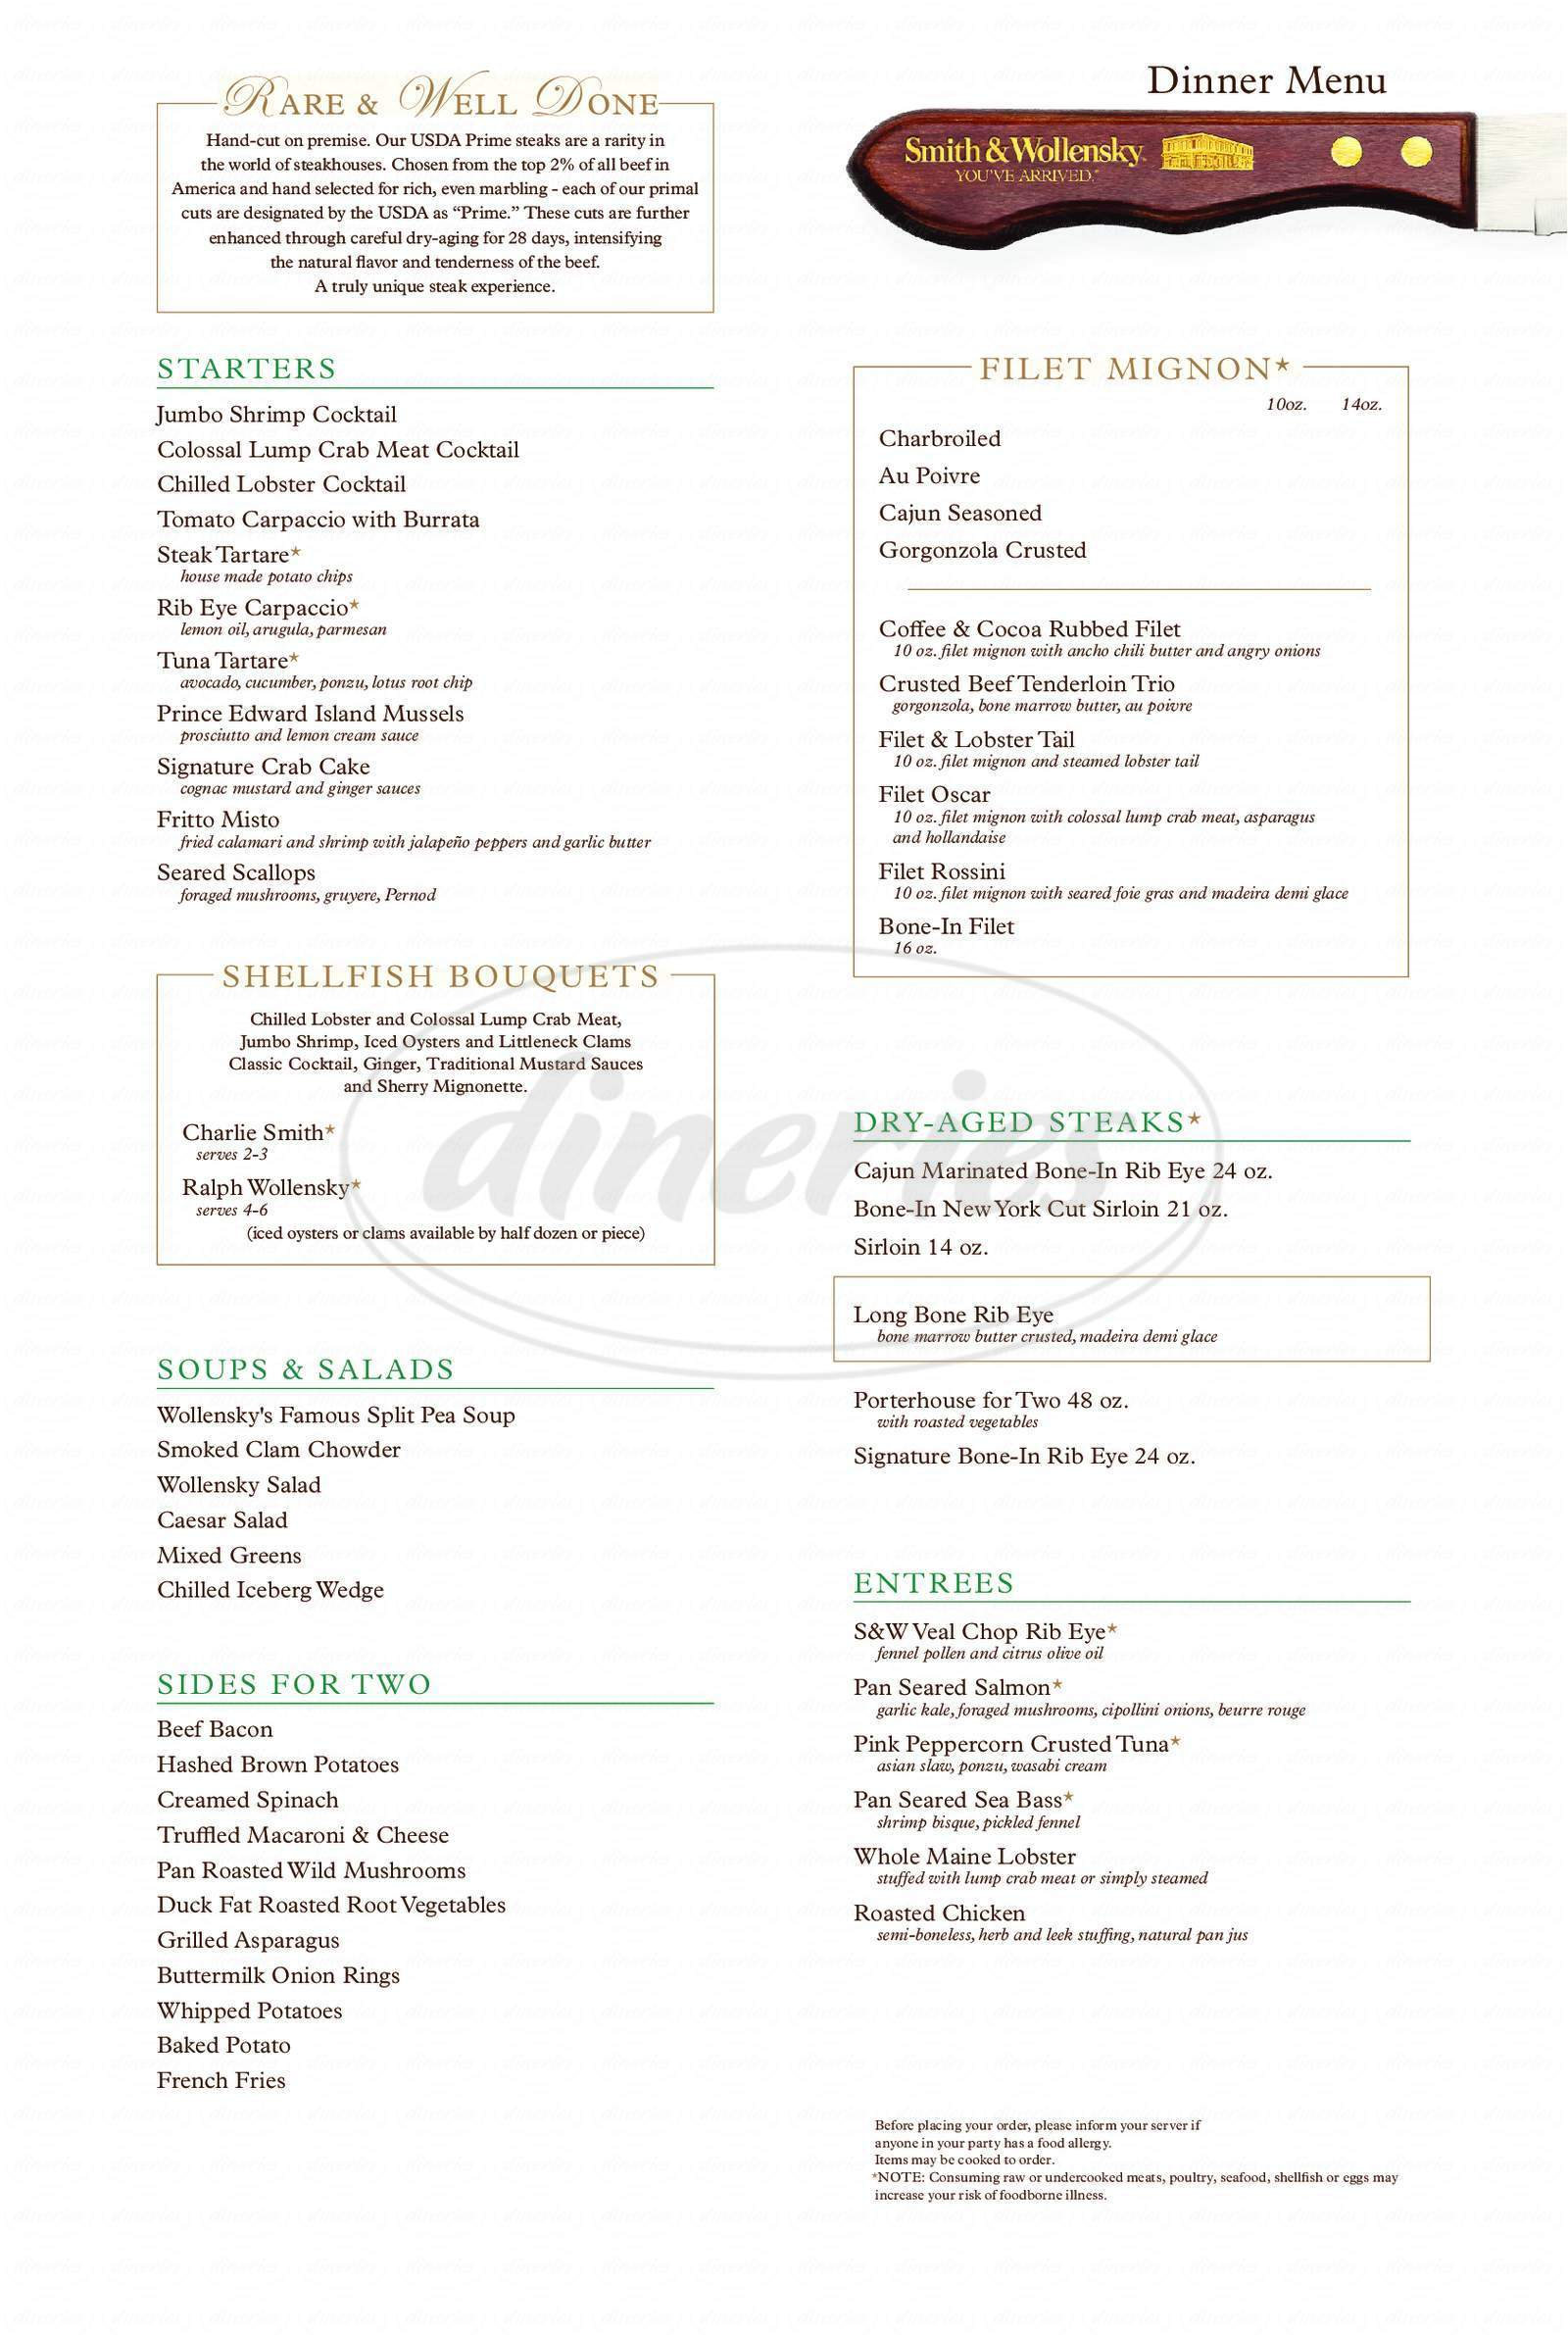 menu for Smith & Wollensky